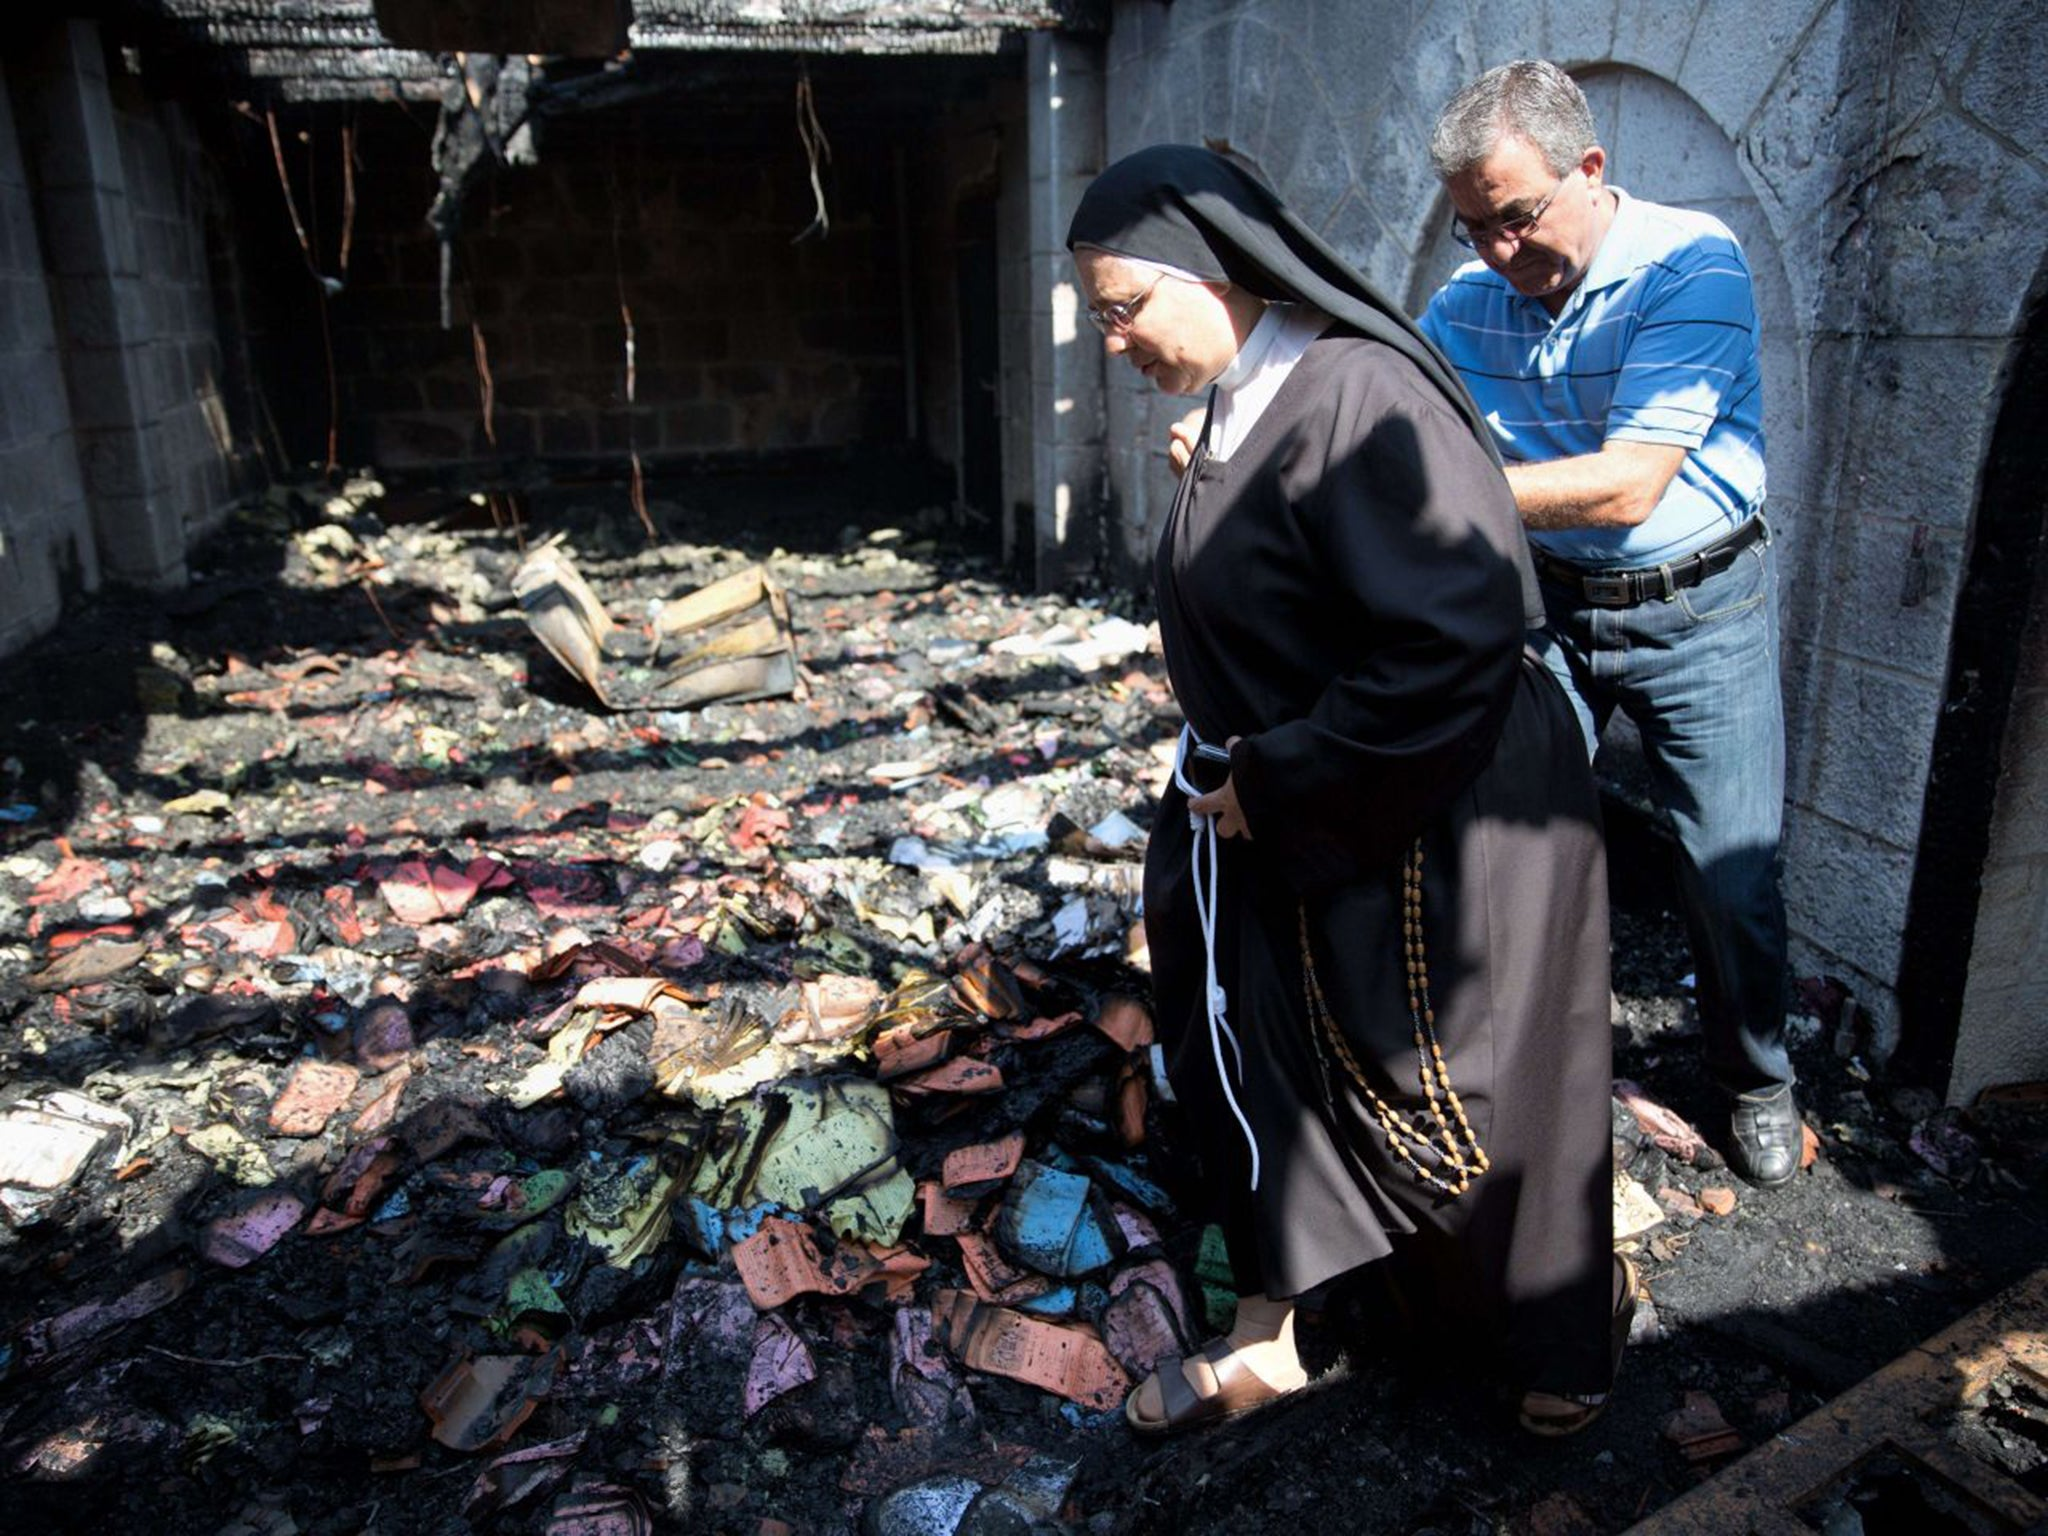 Jewish extremists suspected of torching Sea of Galilee 'loaves and fishes' church in Tabgha